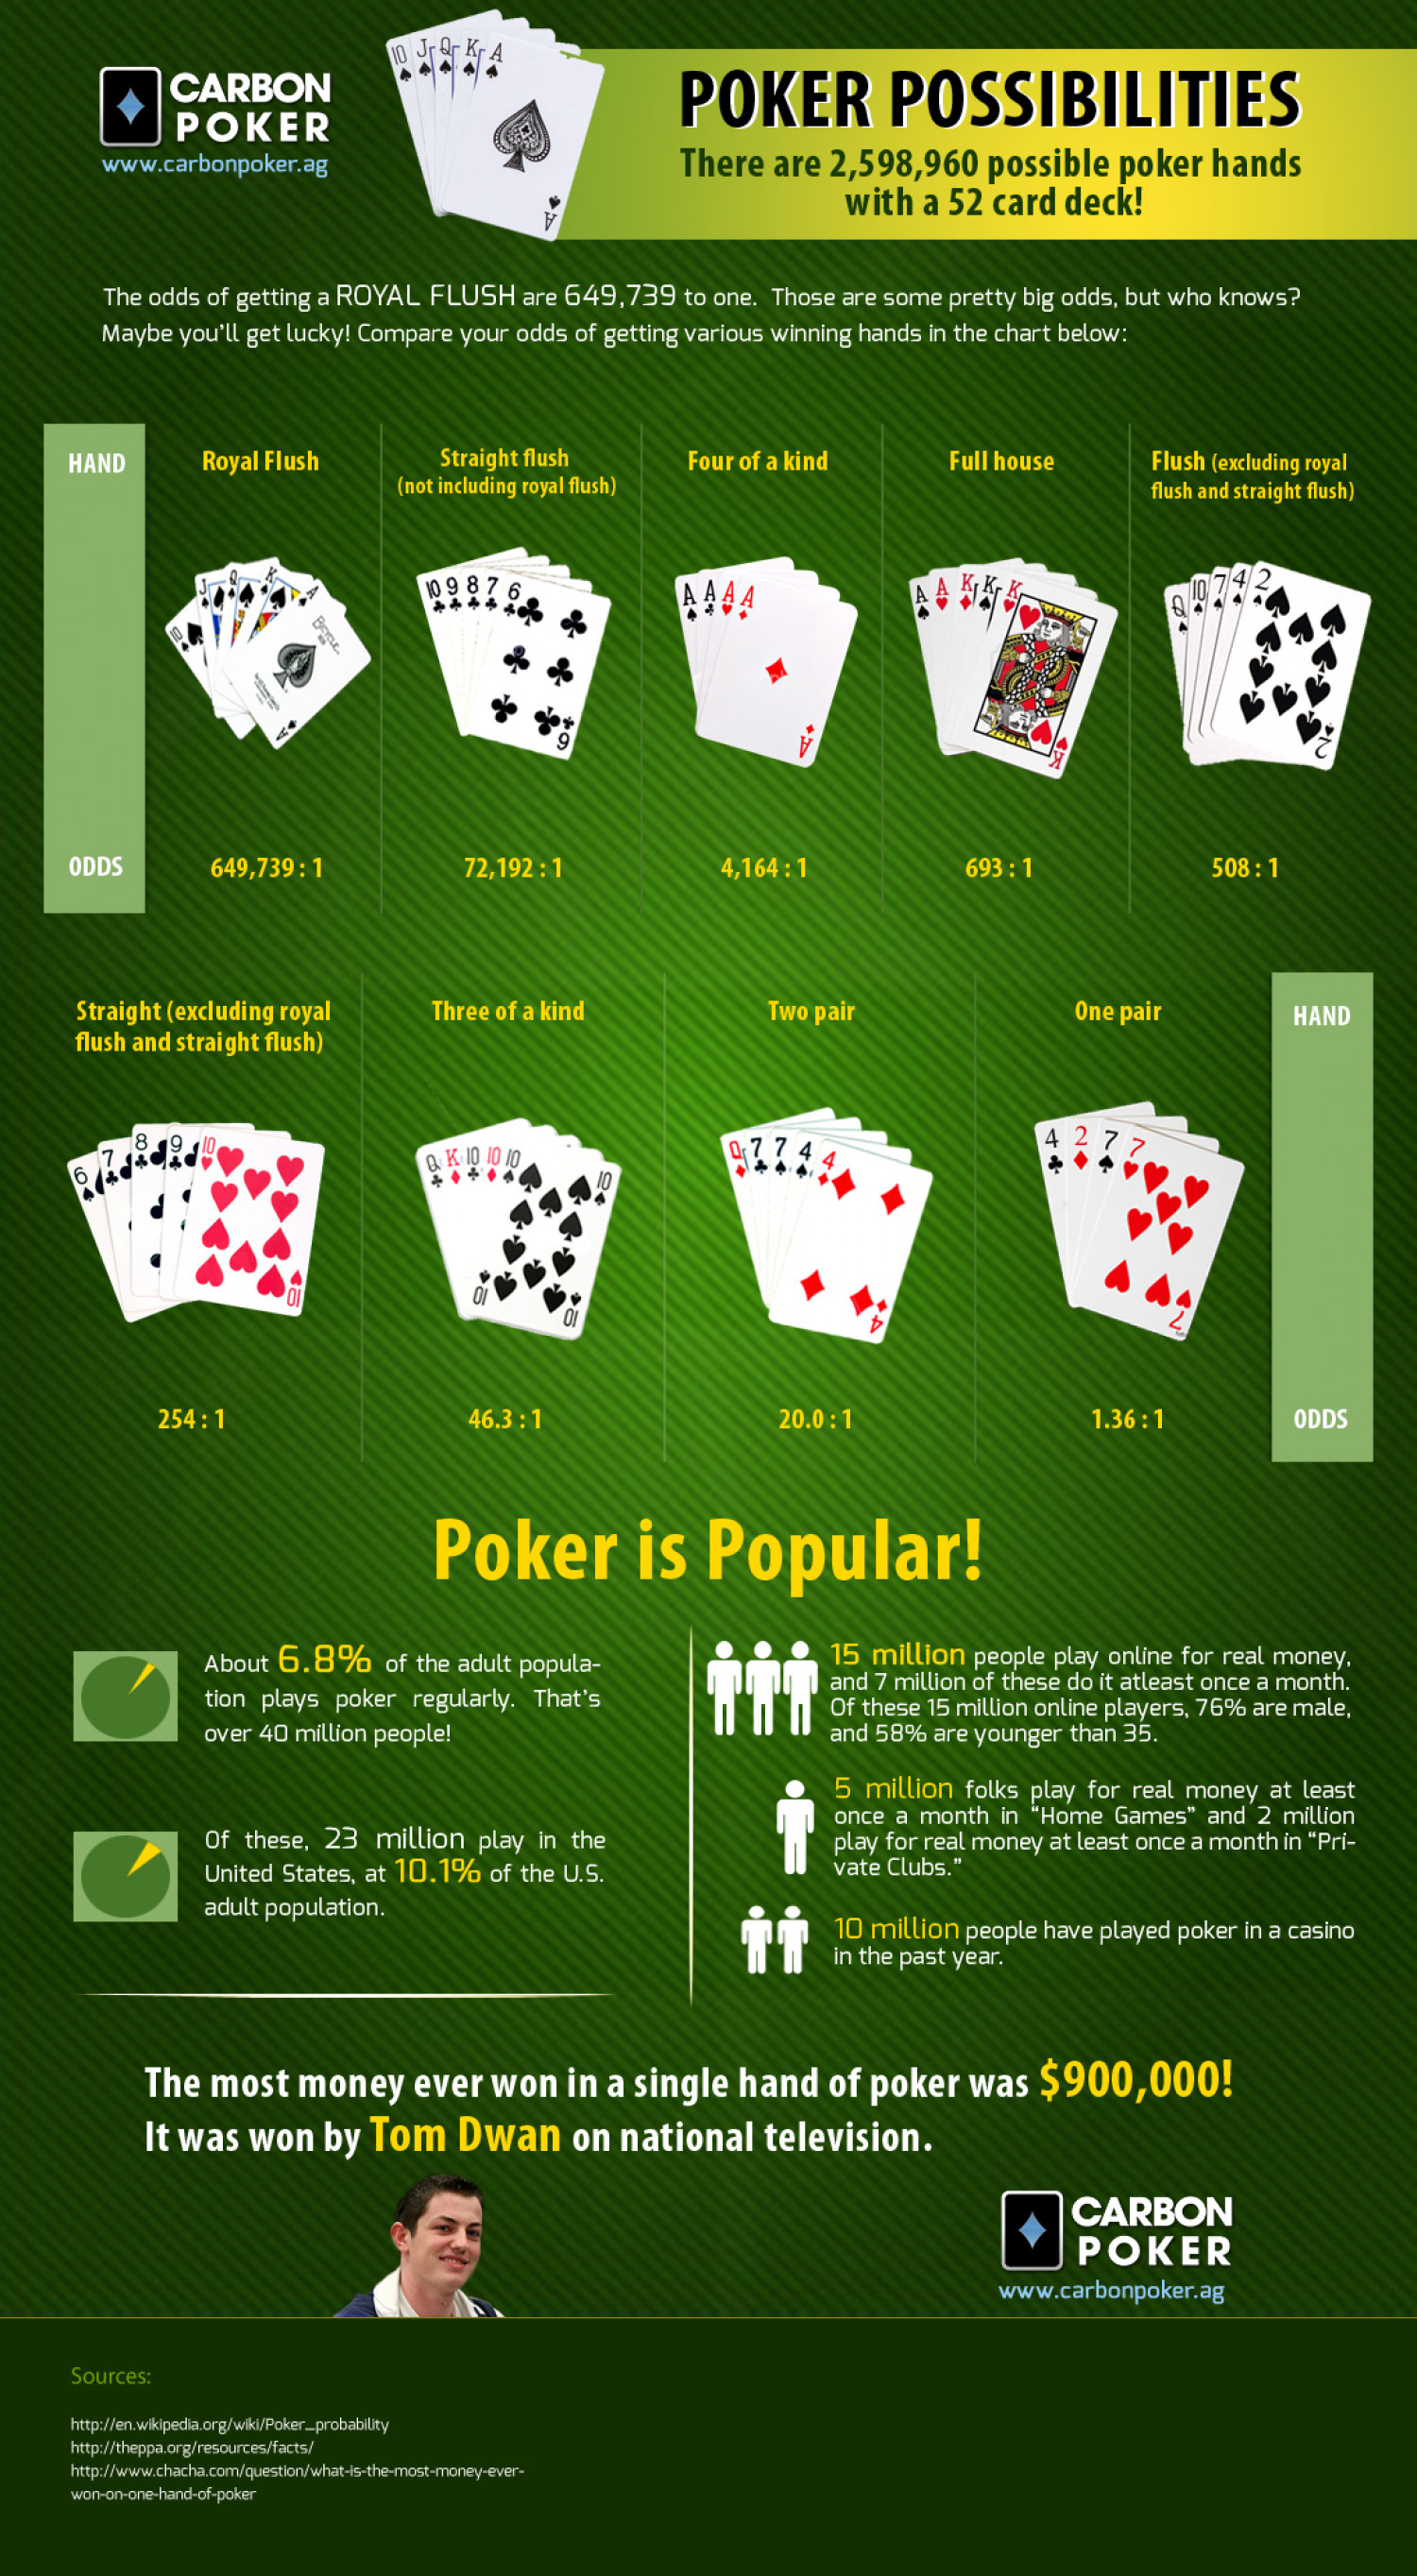 poker possibilities 519c7384a3309 w1500 - Basic Poker Terminology Explained for Beginners